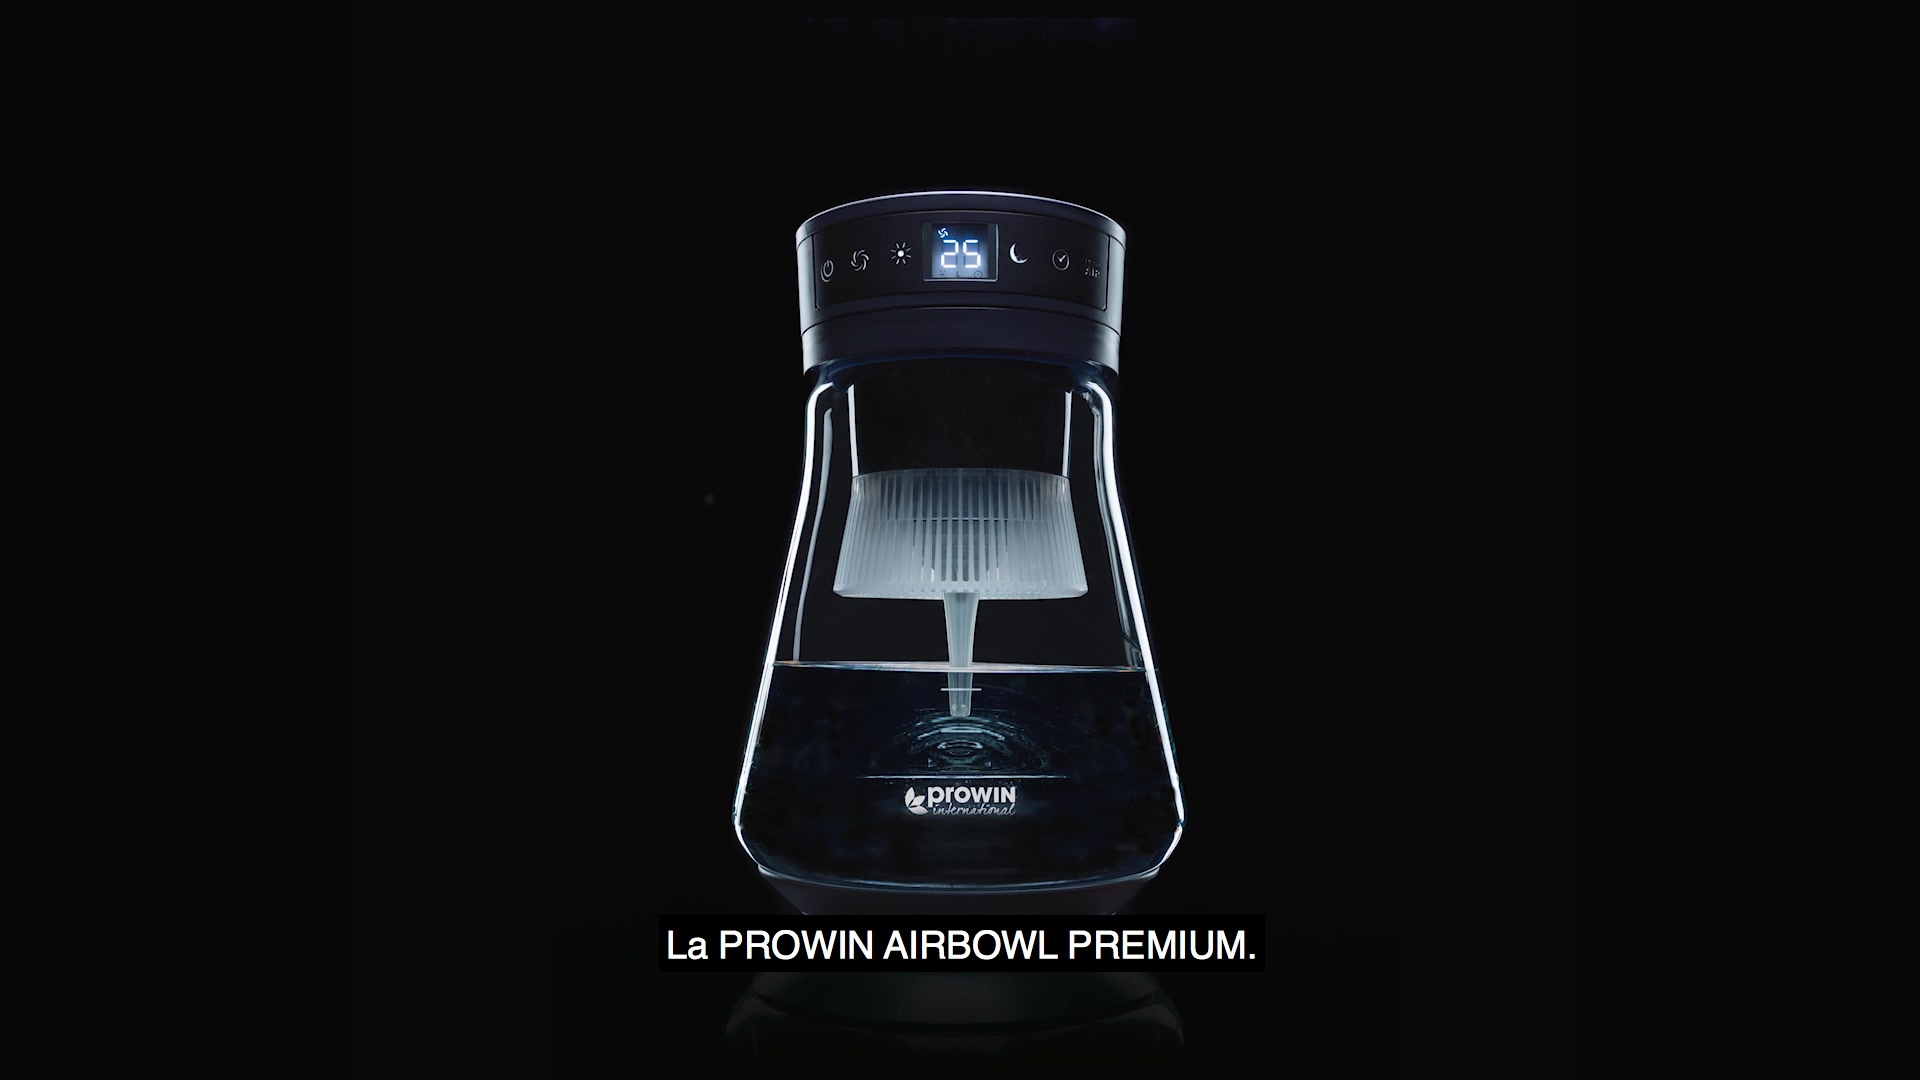 Prowin Air Bowl Bewertung prowin airbowl premium produkt prowin media